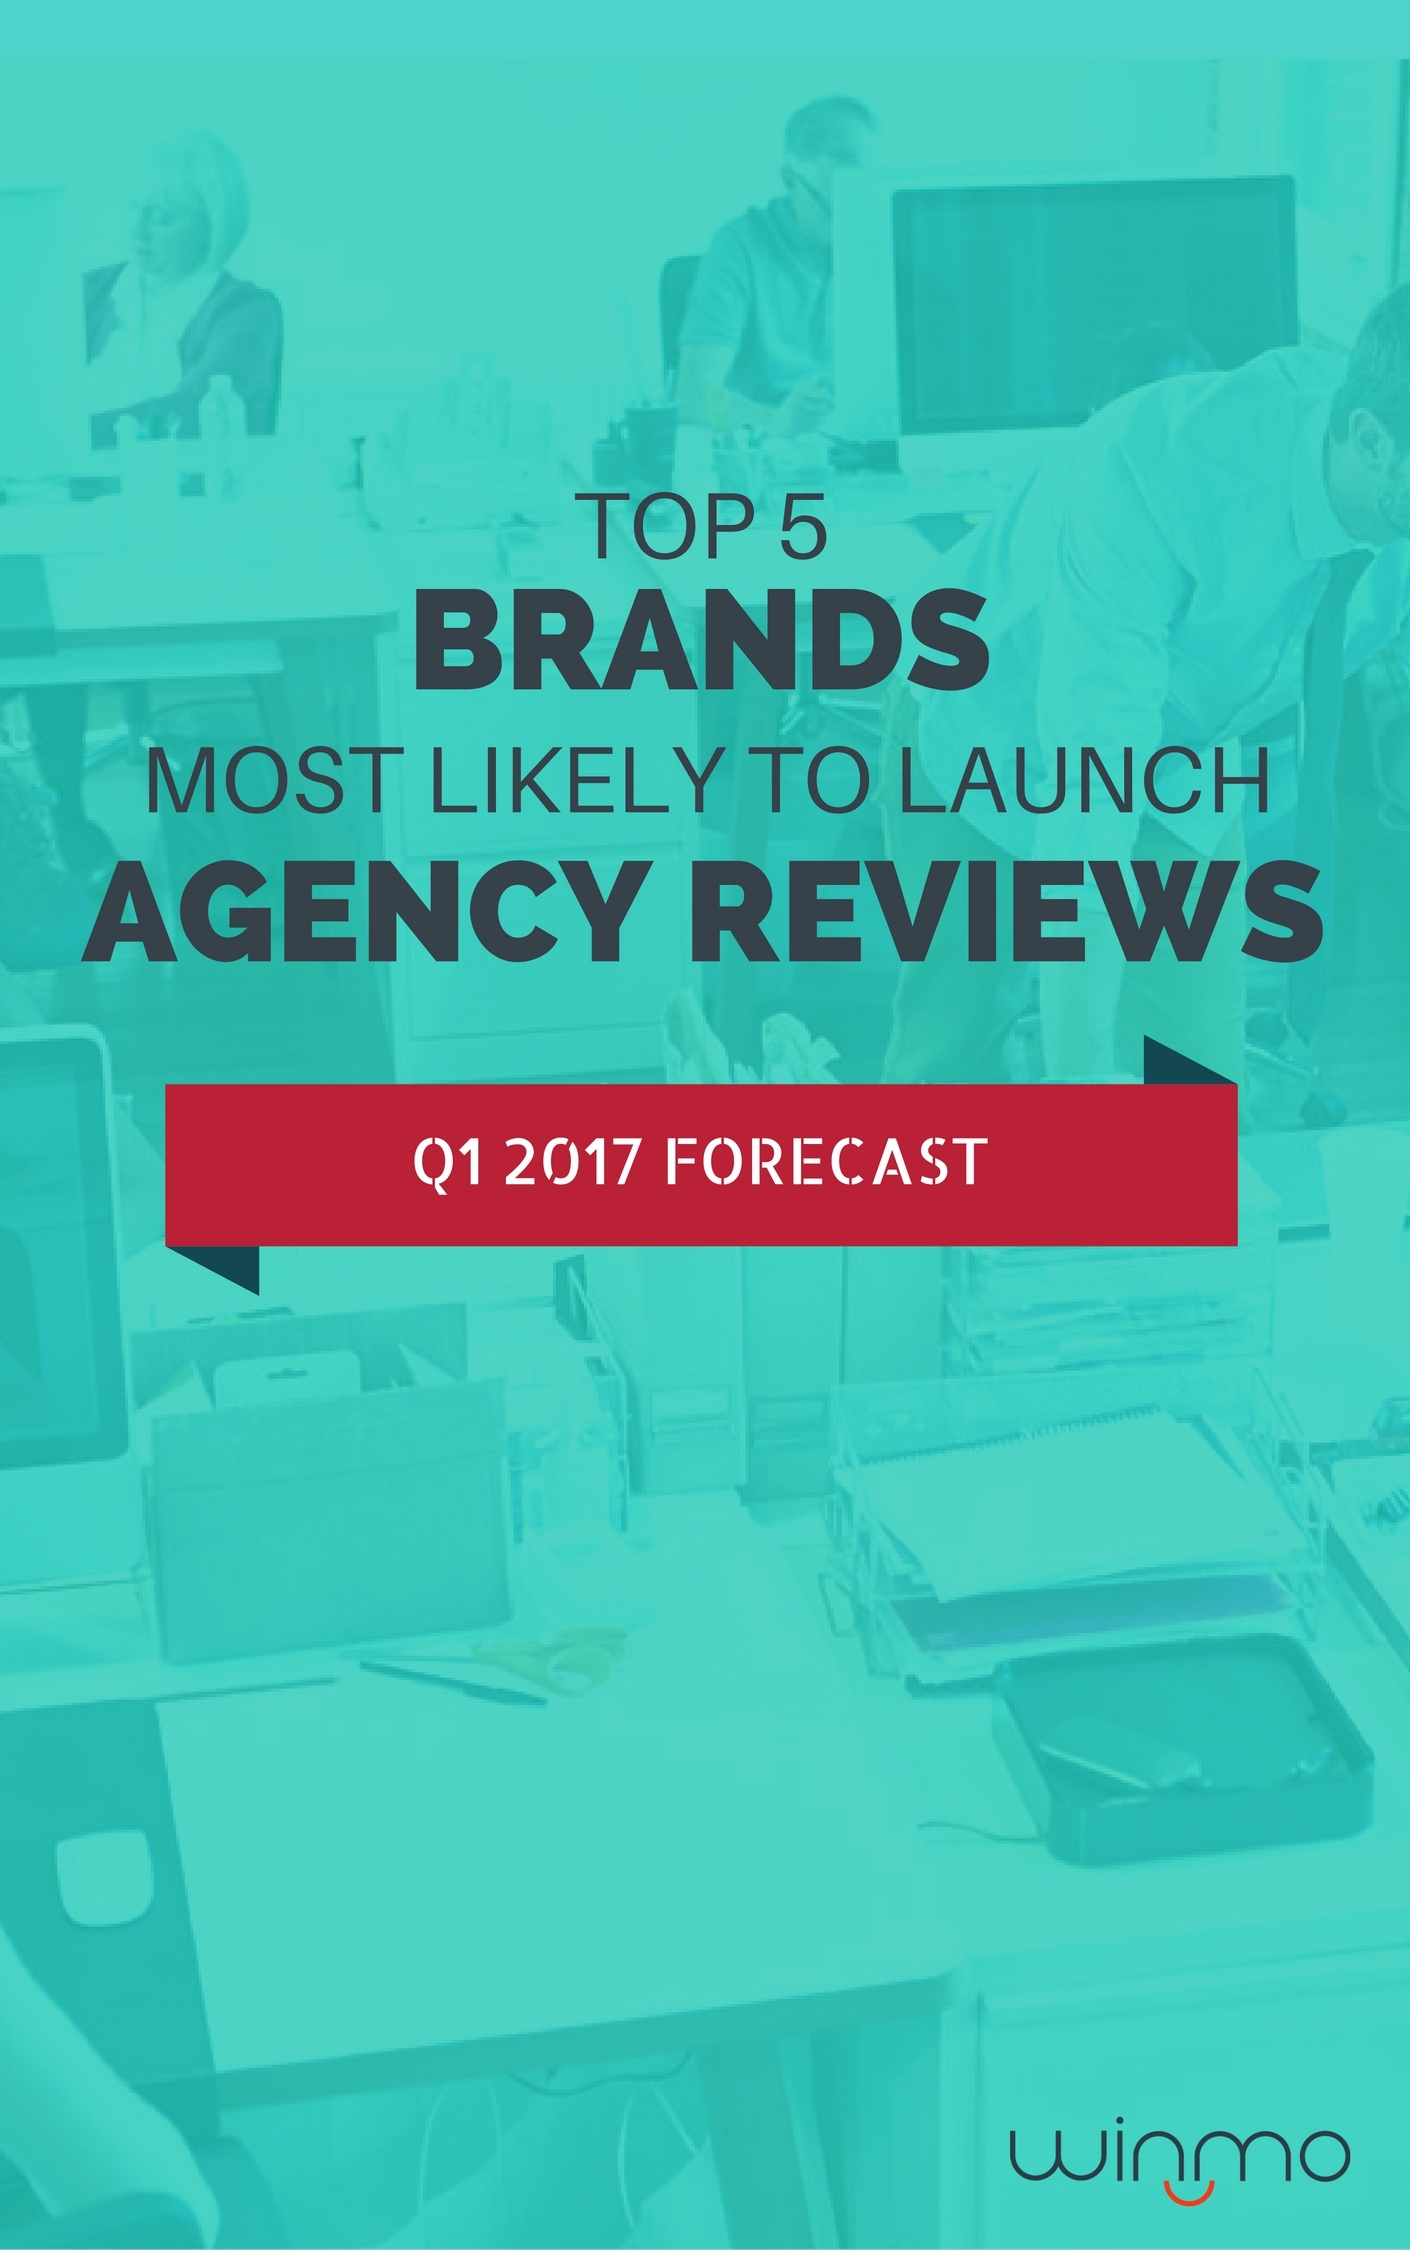 Top_5_Brands_Most_Likely_To_Launch_Agency_Reviews-_Q1_2017_Forecast.jpg